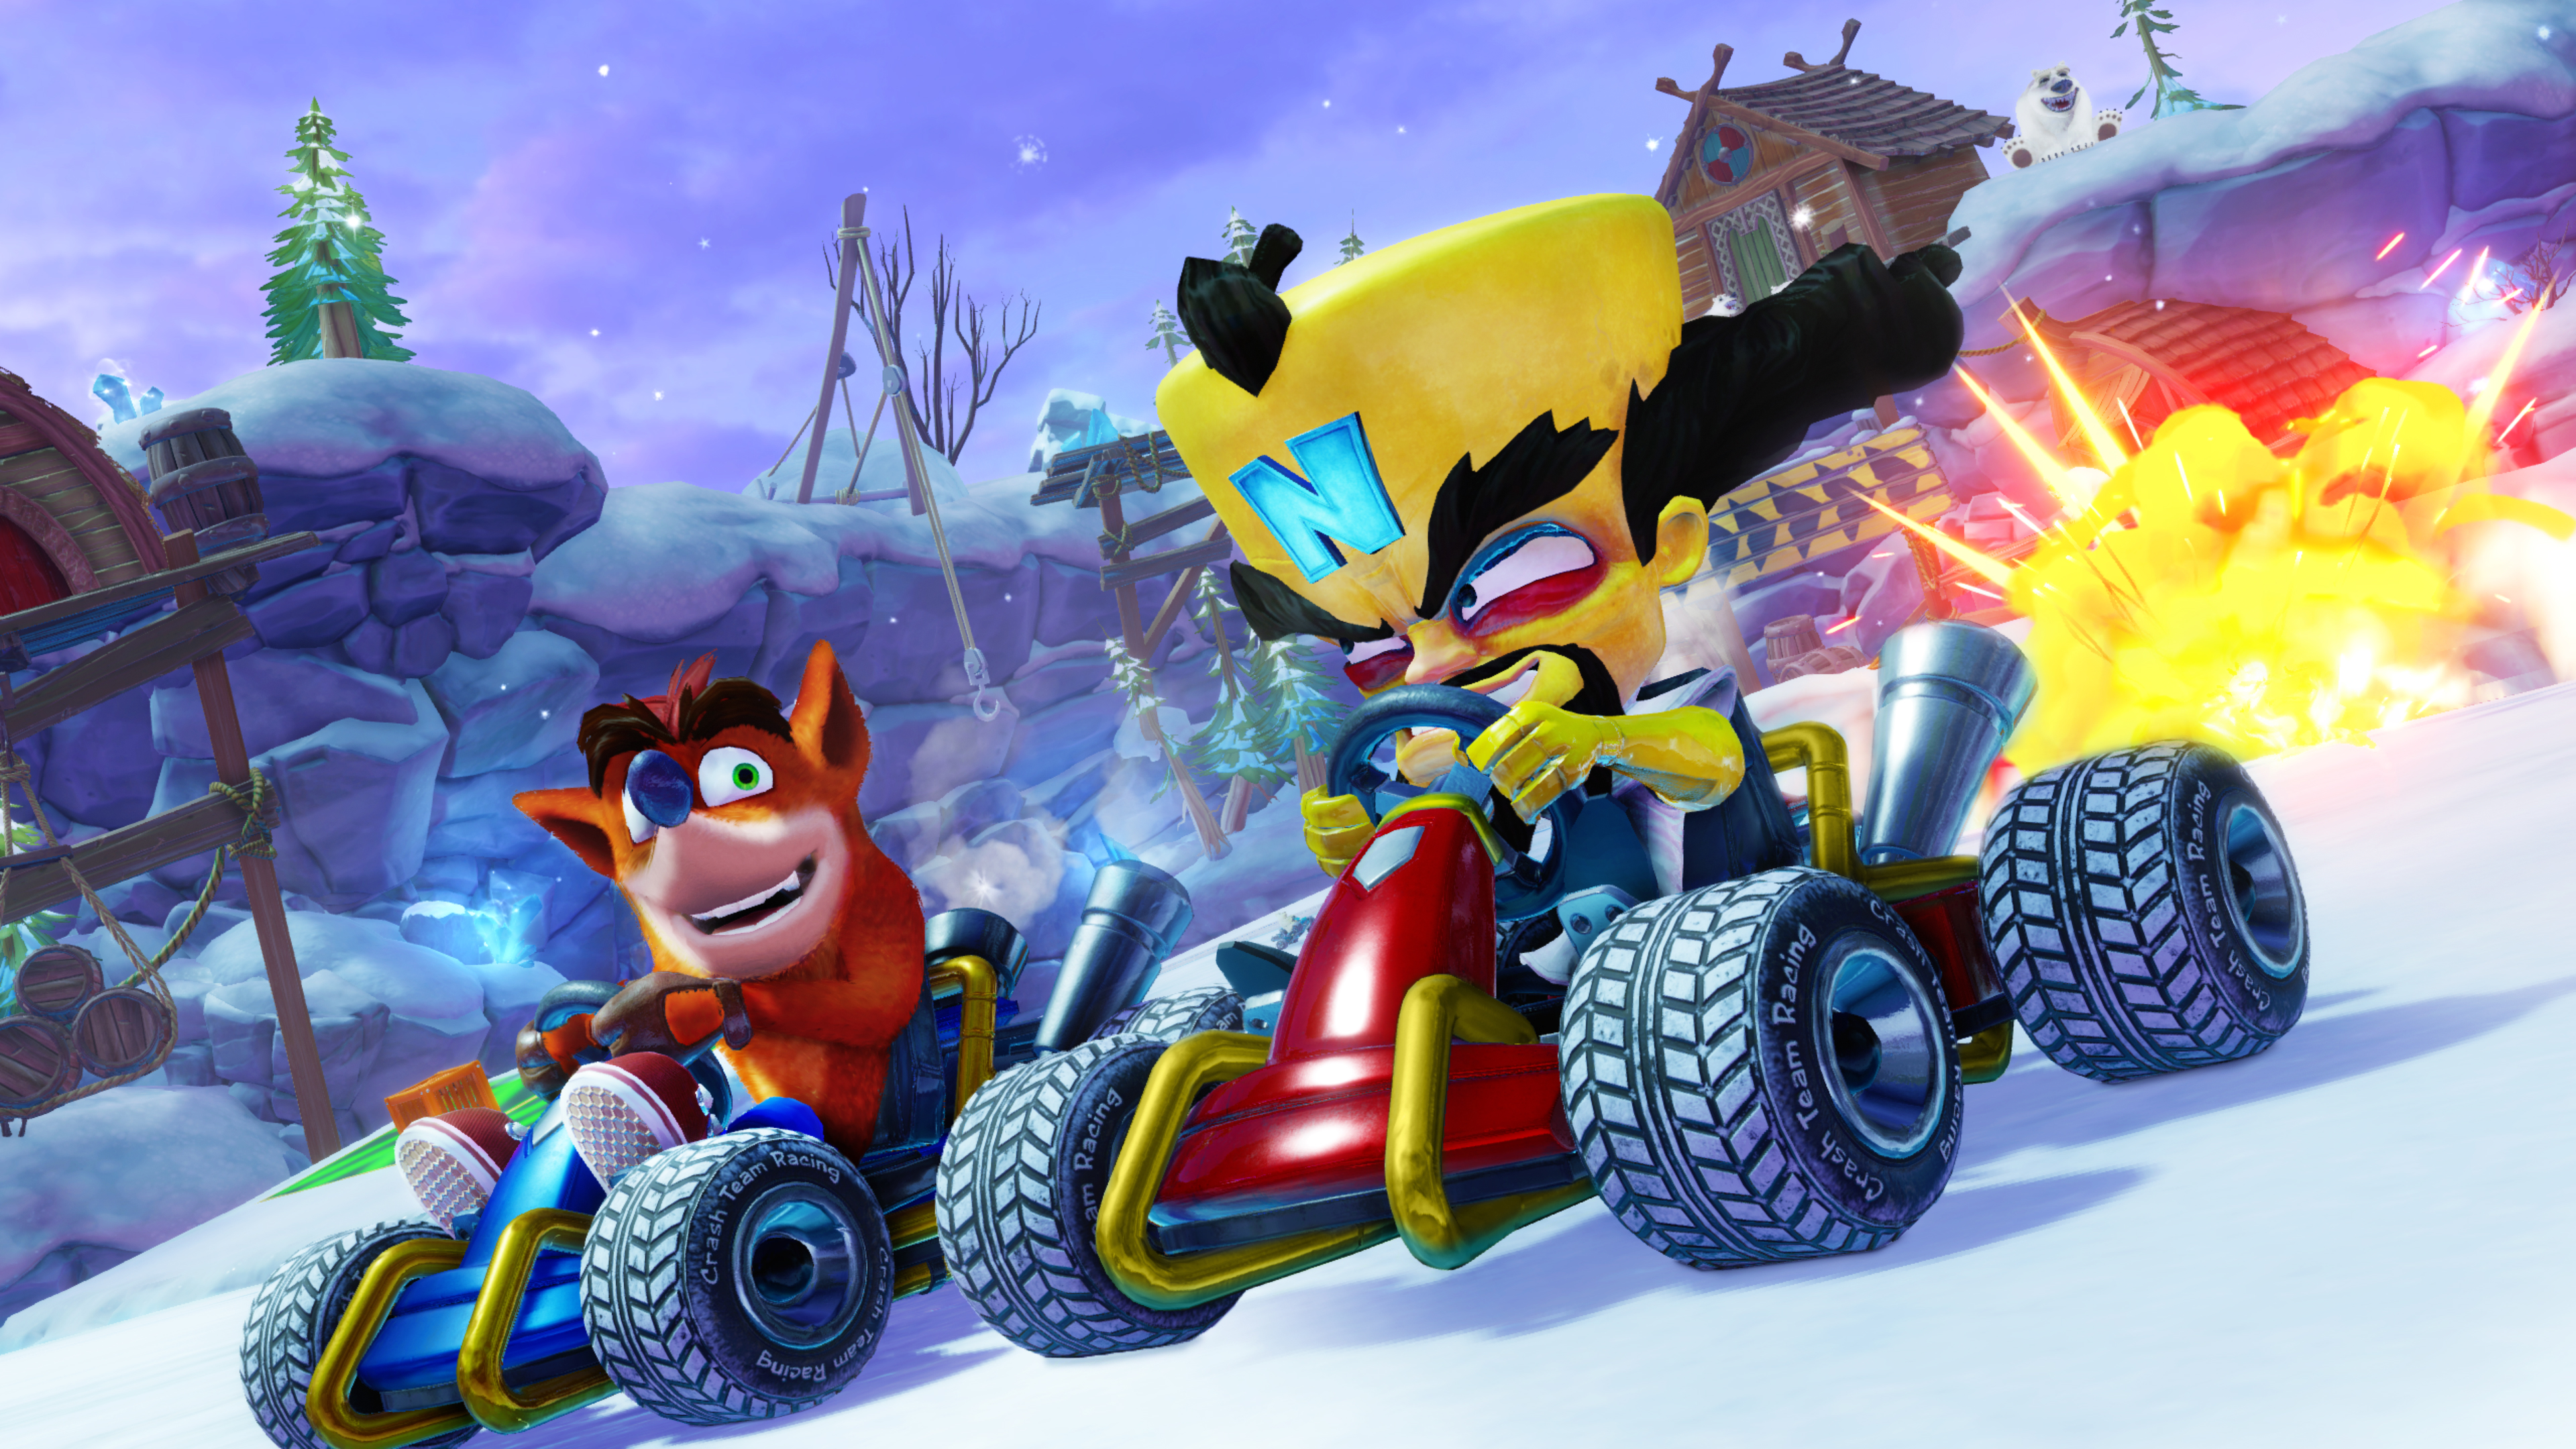 Crash Team Racing cheats: All the Nitro Fueled cheat codes